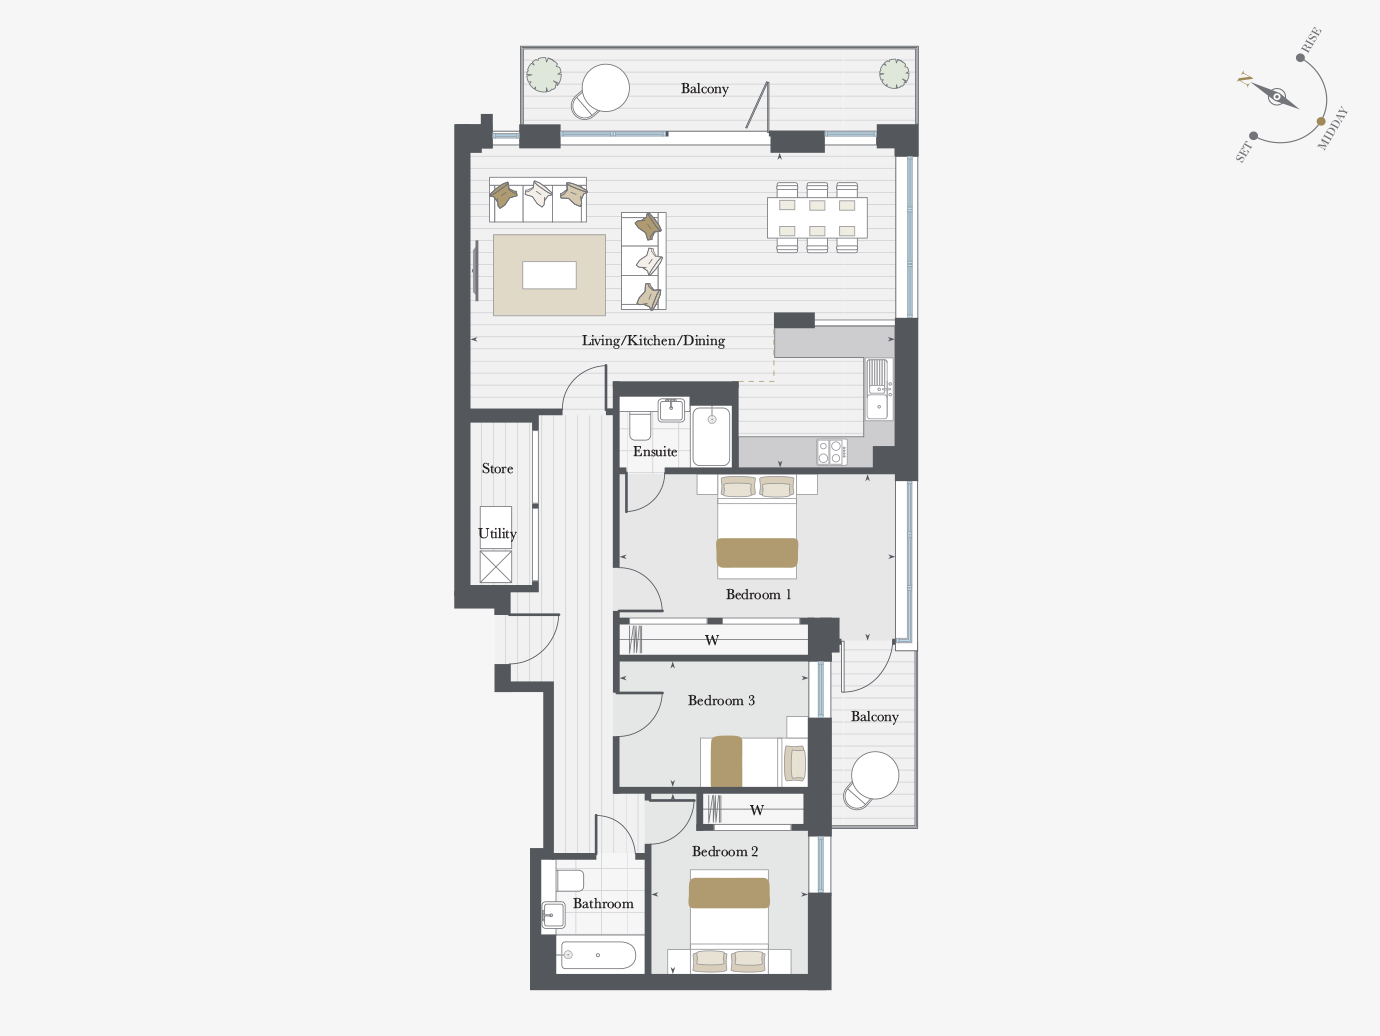 Floorplan for Apartment P6/02 at City Wharf, Sixth